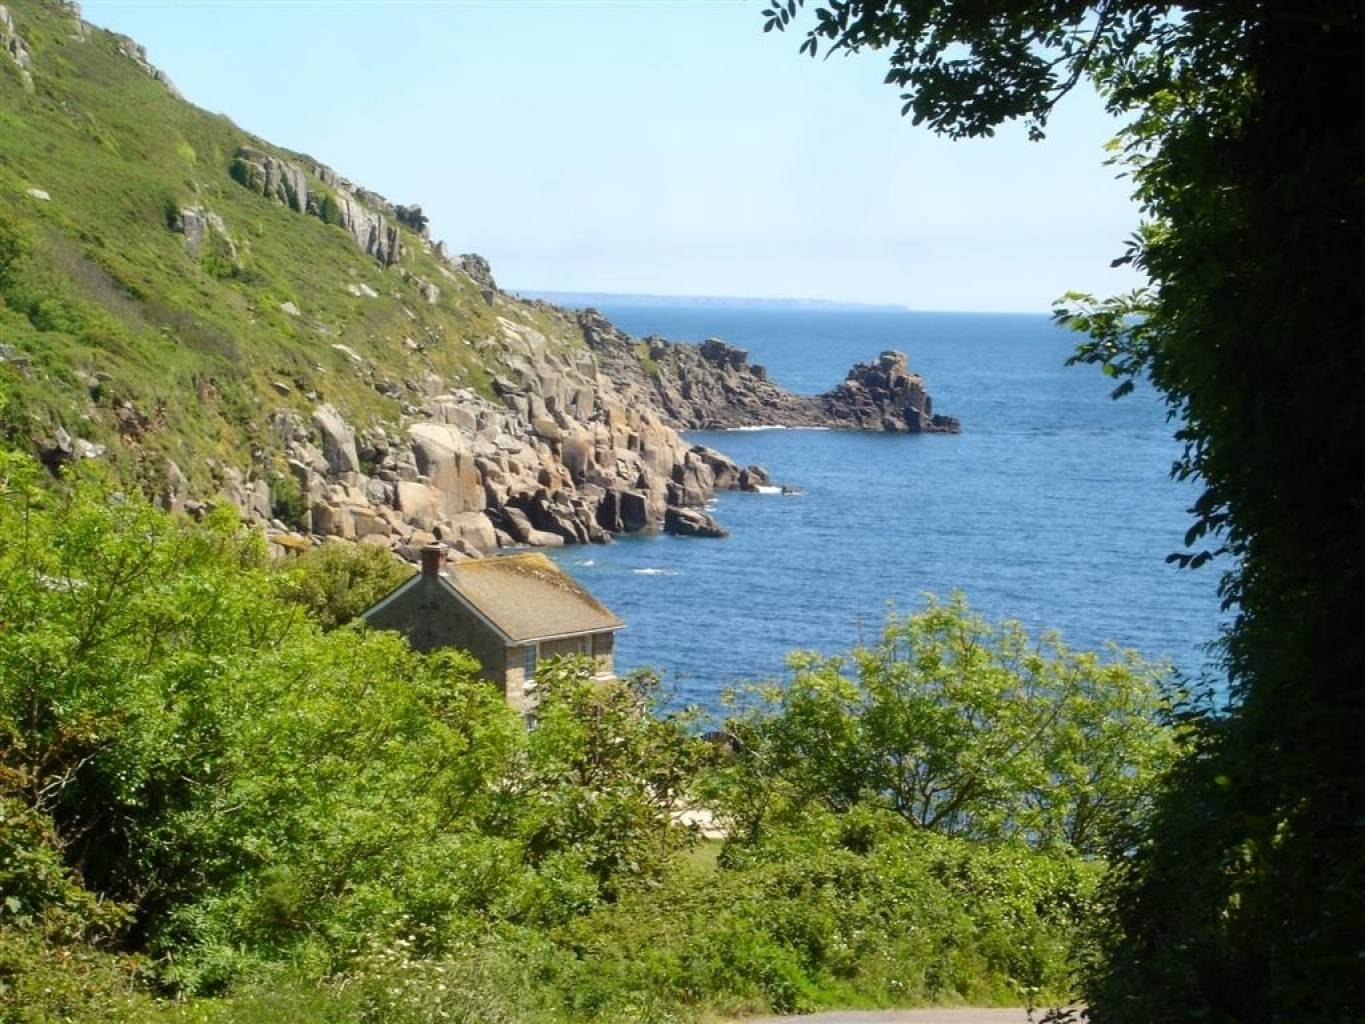 View across Lamorna Cove towards the Lizard